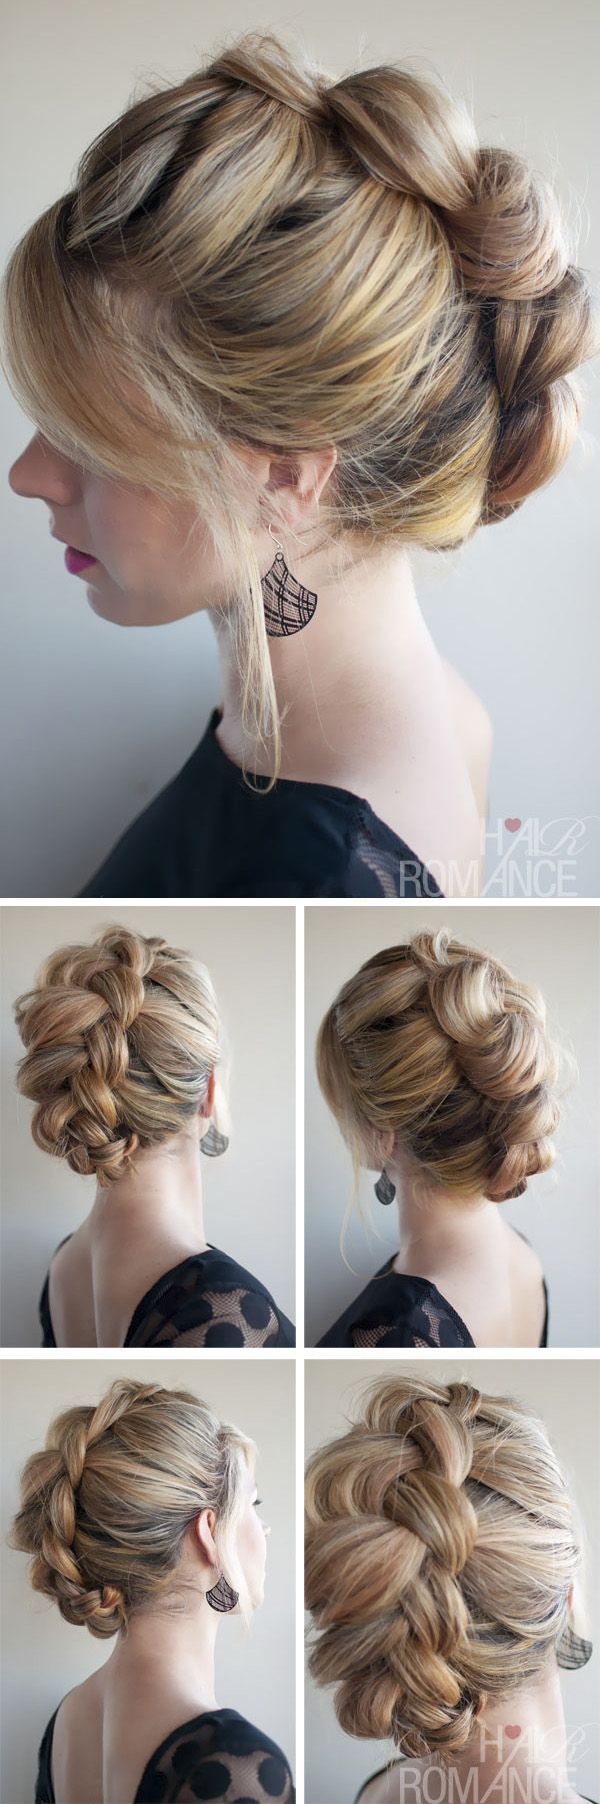 148 Best Images About Updo Hairstyles For Long Hair On